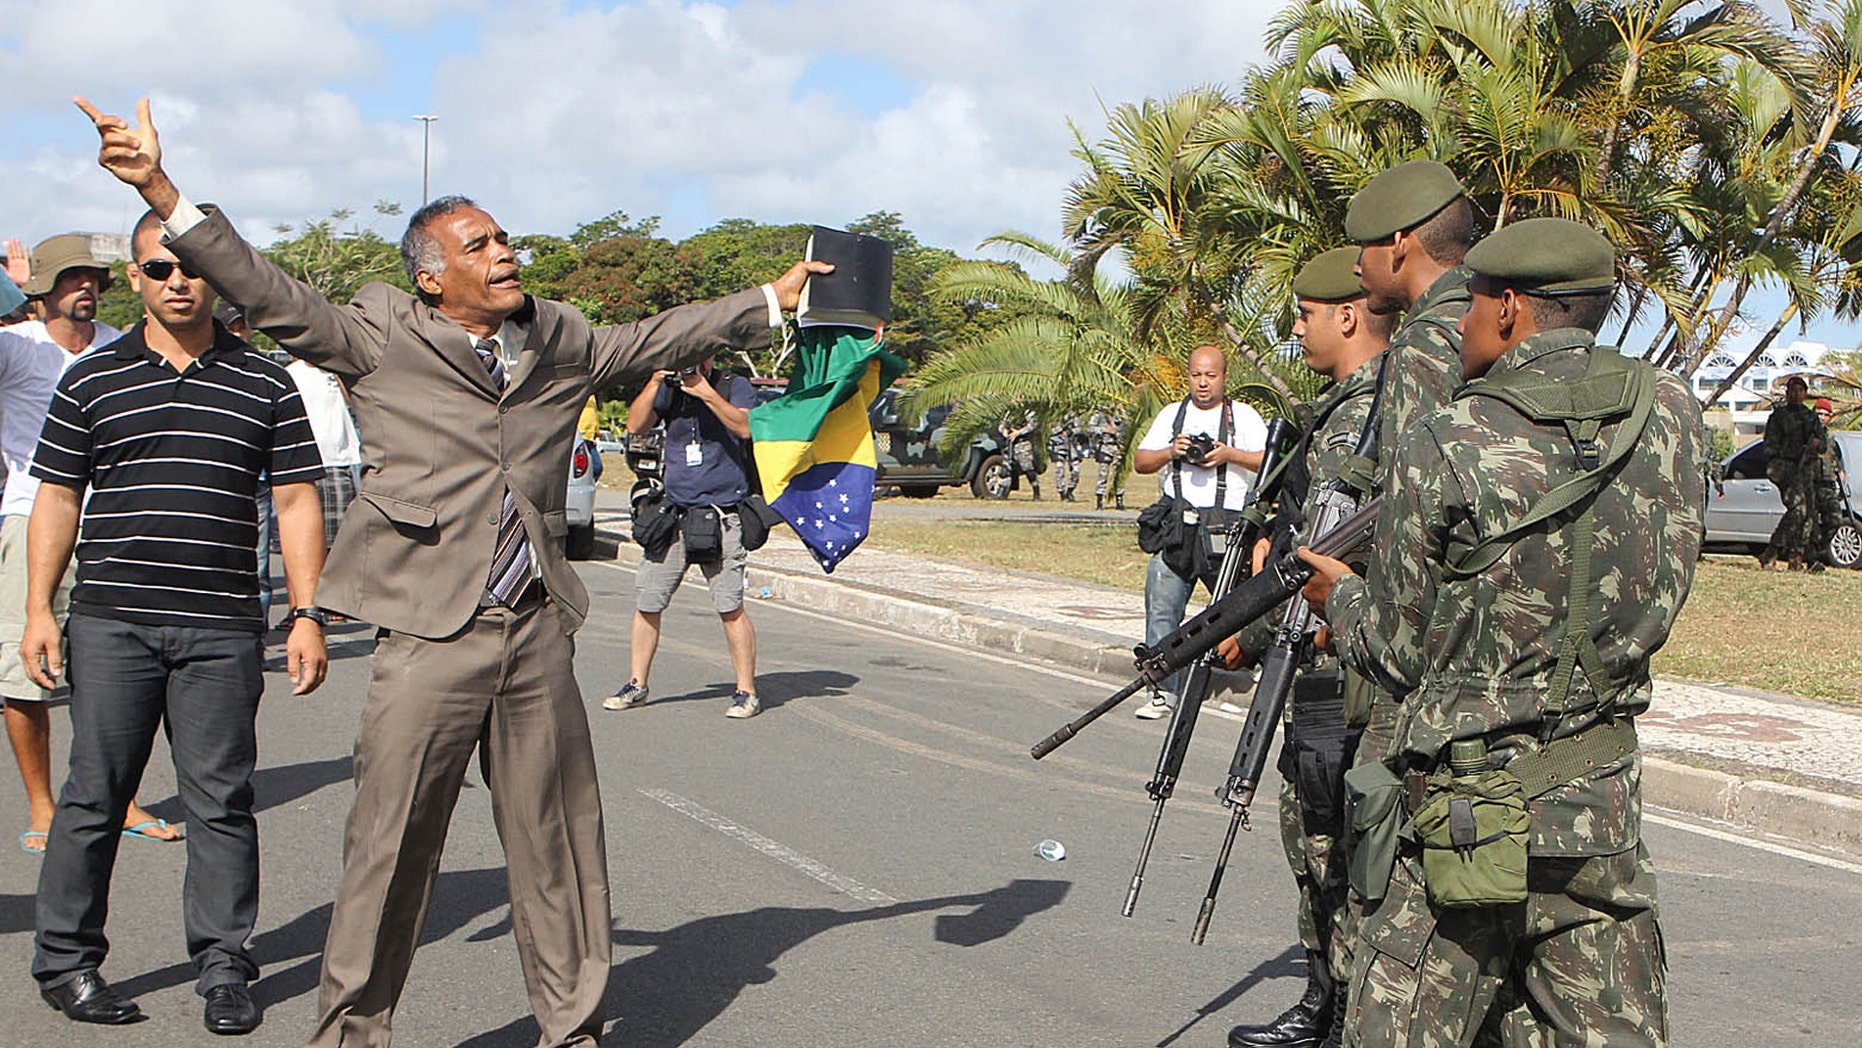 A protester shouts to soldiers during a police strike, in Salvador, Brazil, Monday, Feb. 6, 2012. Murder rates in Brazil's northeastern city of Salvador have more than doubled since the start of a police strike, media reports said Sunday. The strike has thrown a pall over preparations for Carnival in Brazil's third largest city, unleashing a rash of looting and a spike in the murder. (AP Photo/Paulo Macedo)